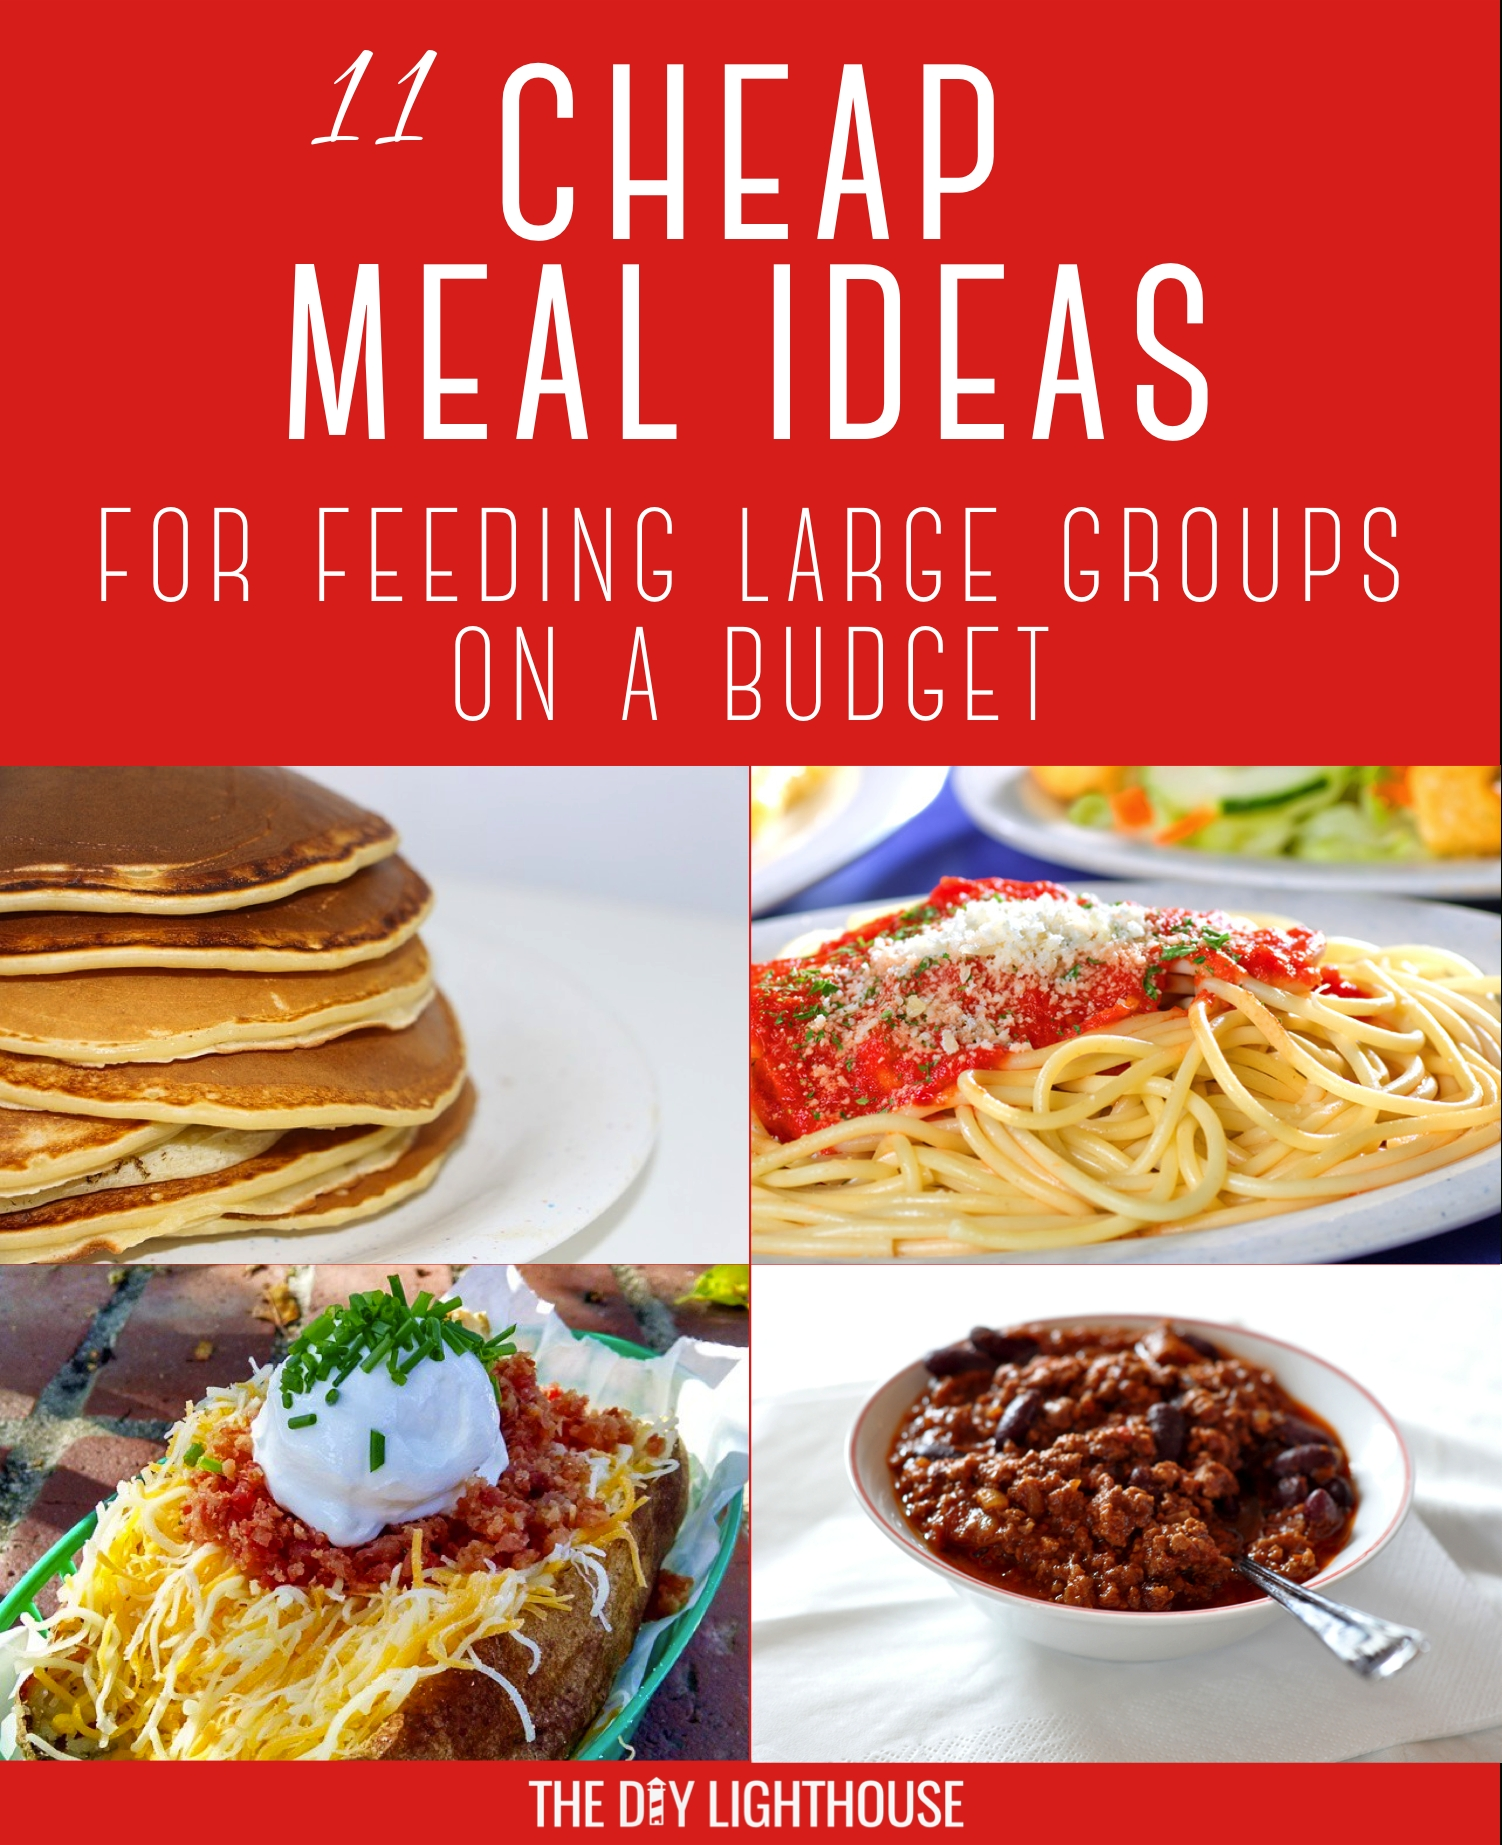 10 Cute Meal Ideas On A Budget cheap meals for feeding large groups 2020